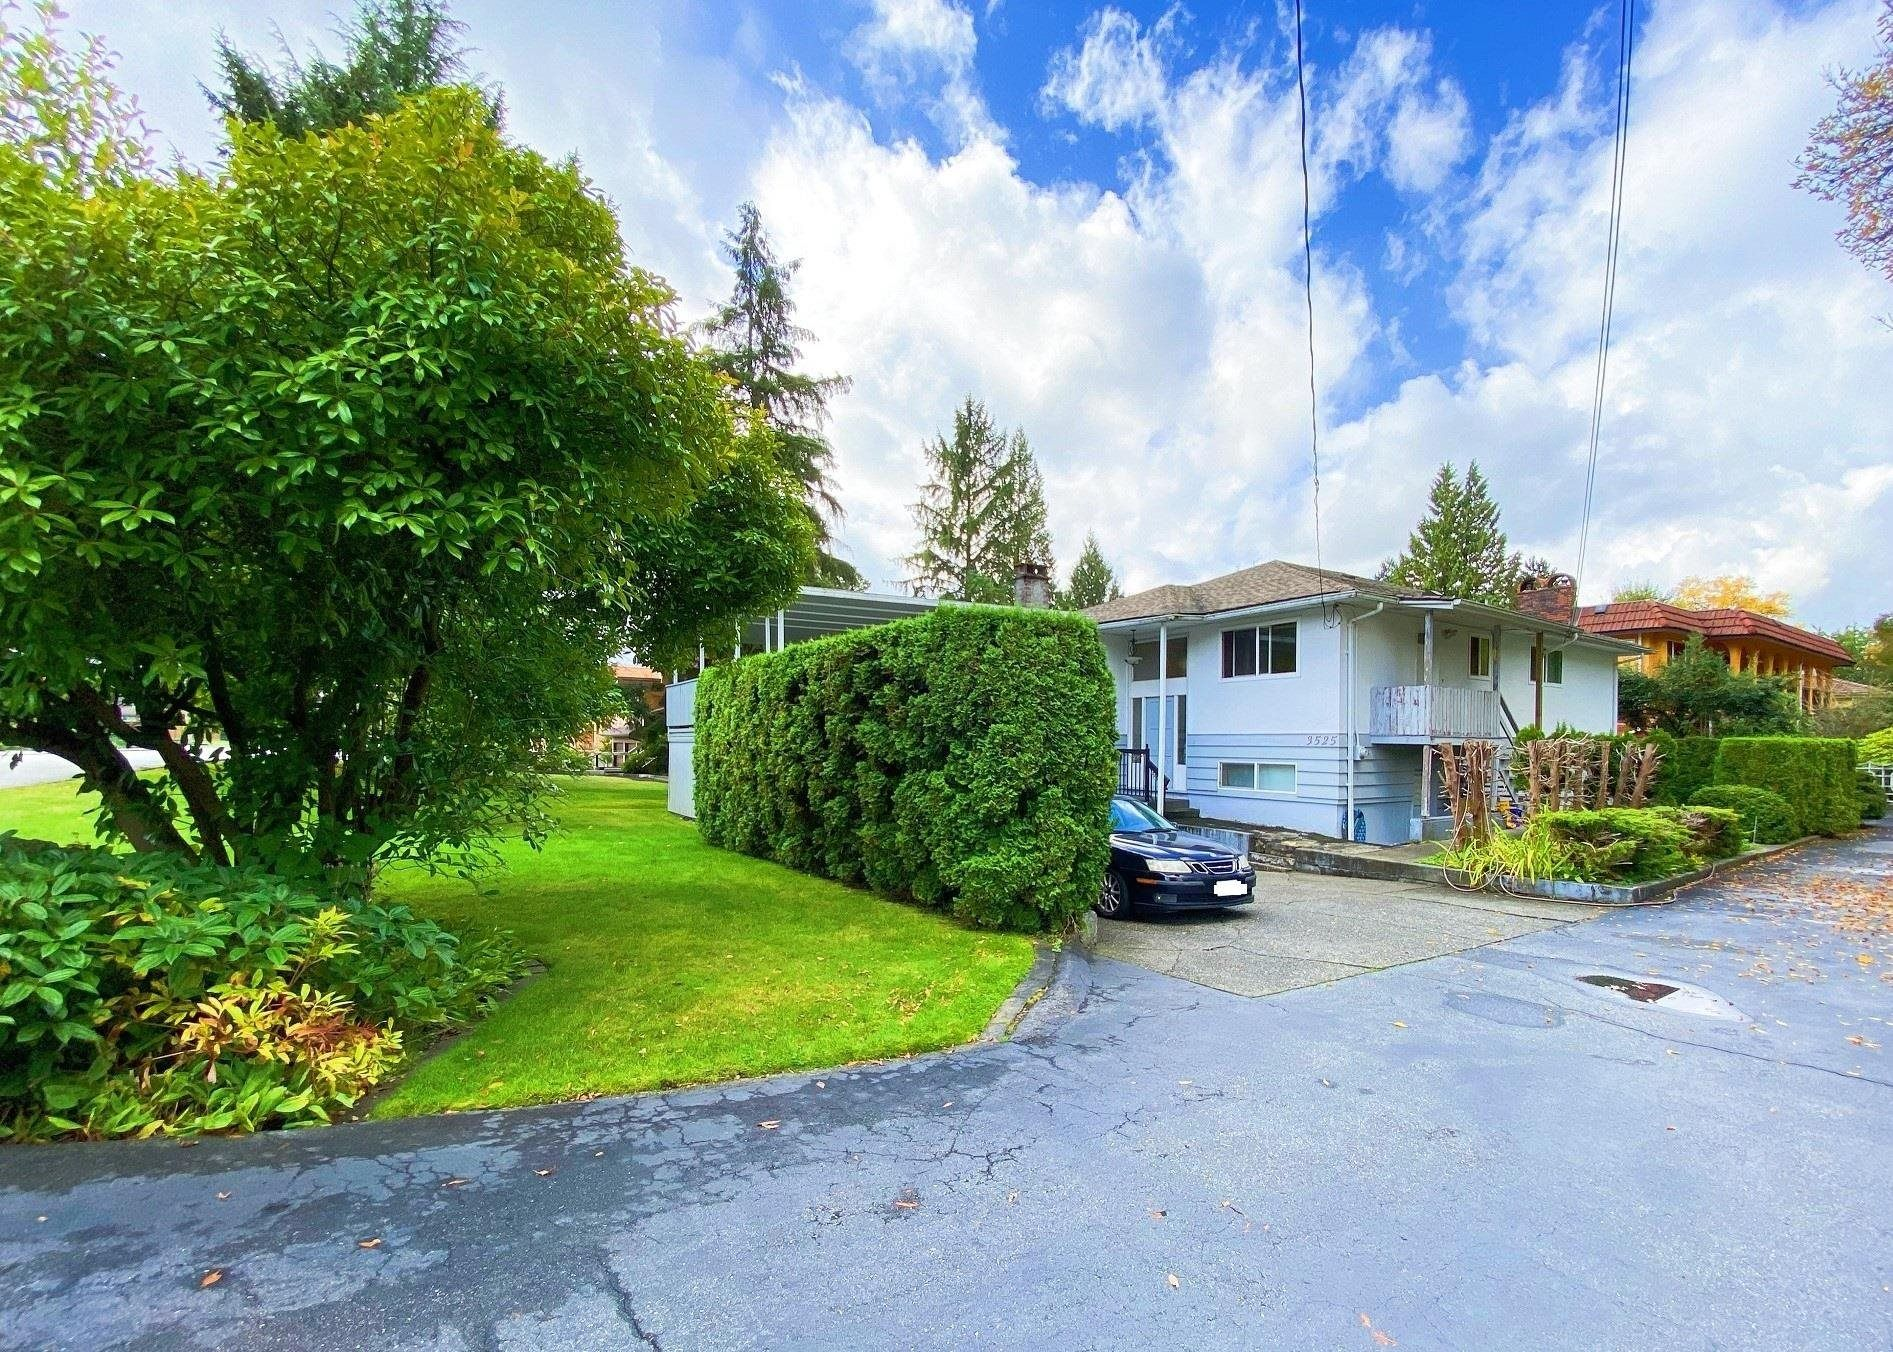 Main Photo: 3525 PHILLIPS Avenue in Burnaby: Government Road House for sale (Burnaby North)  : MLS®# R2623259